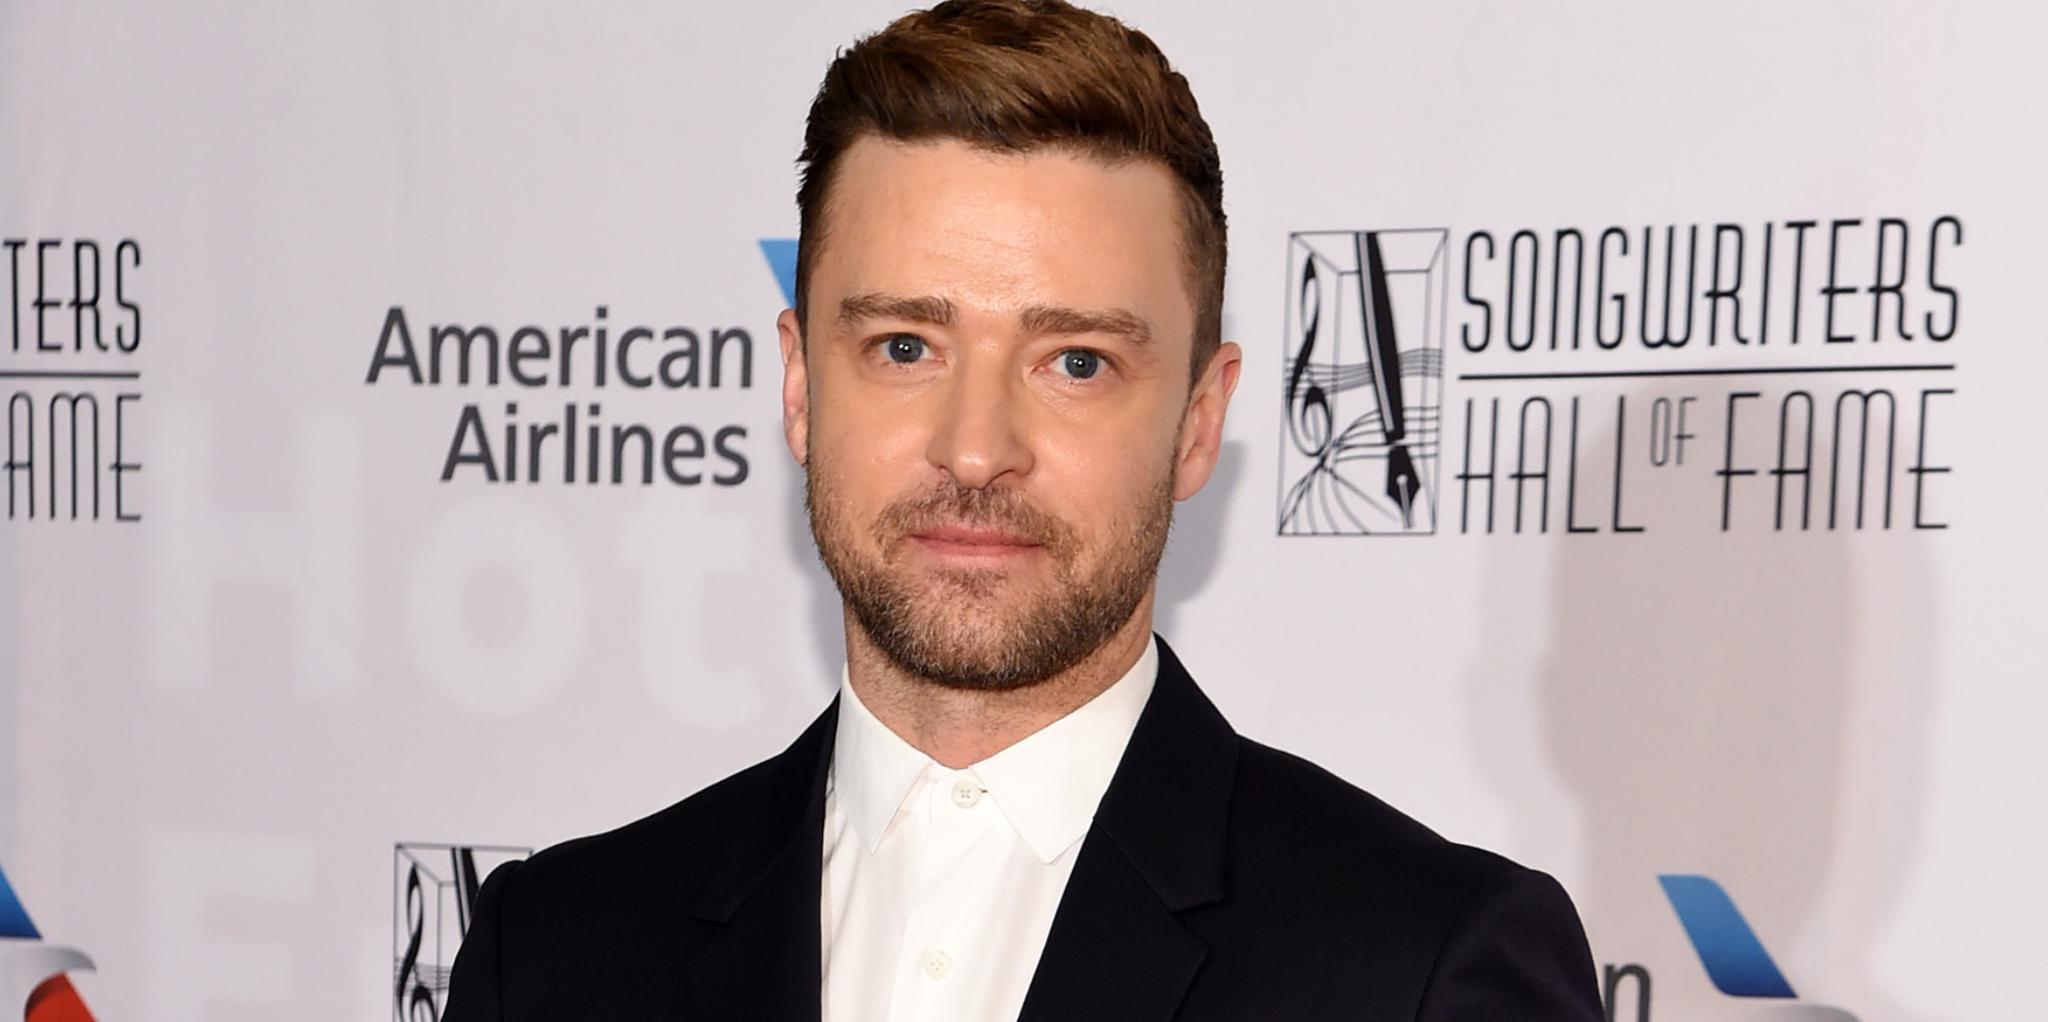 Justin Timberlake apologises to wife for 'lapse in judgement'